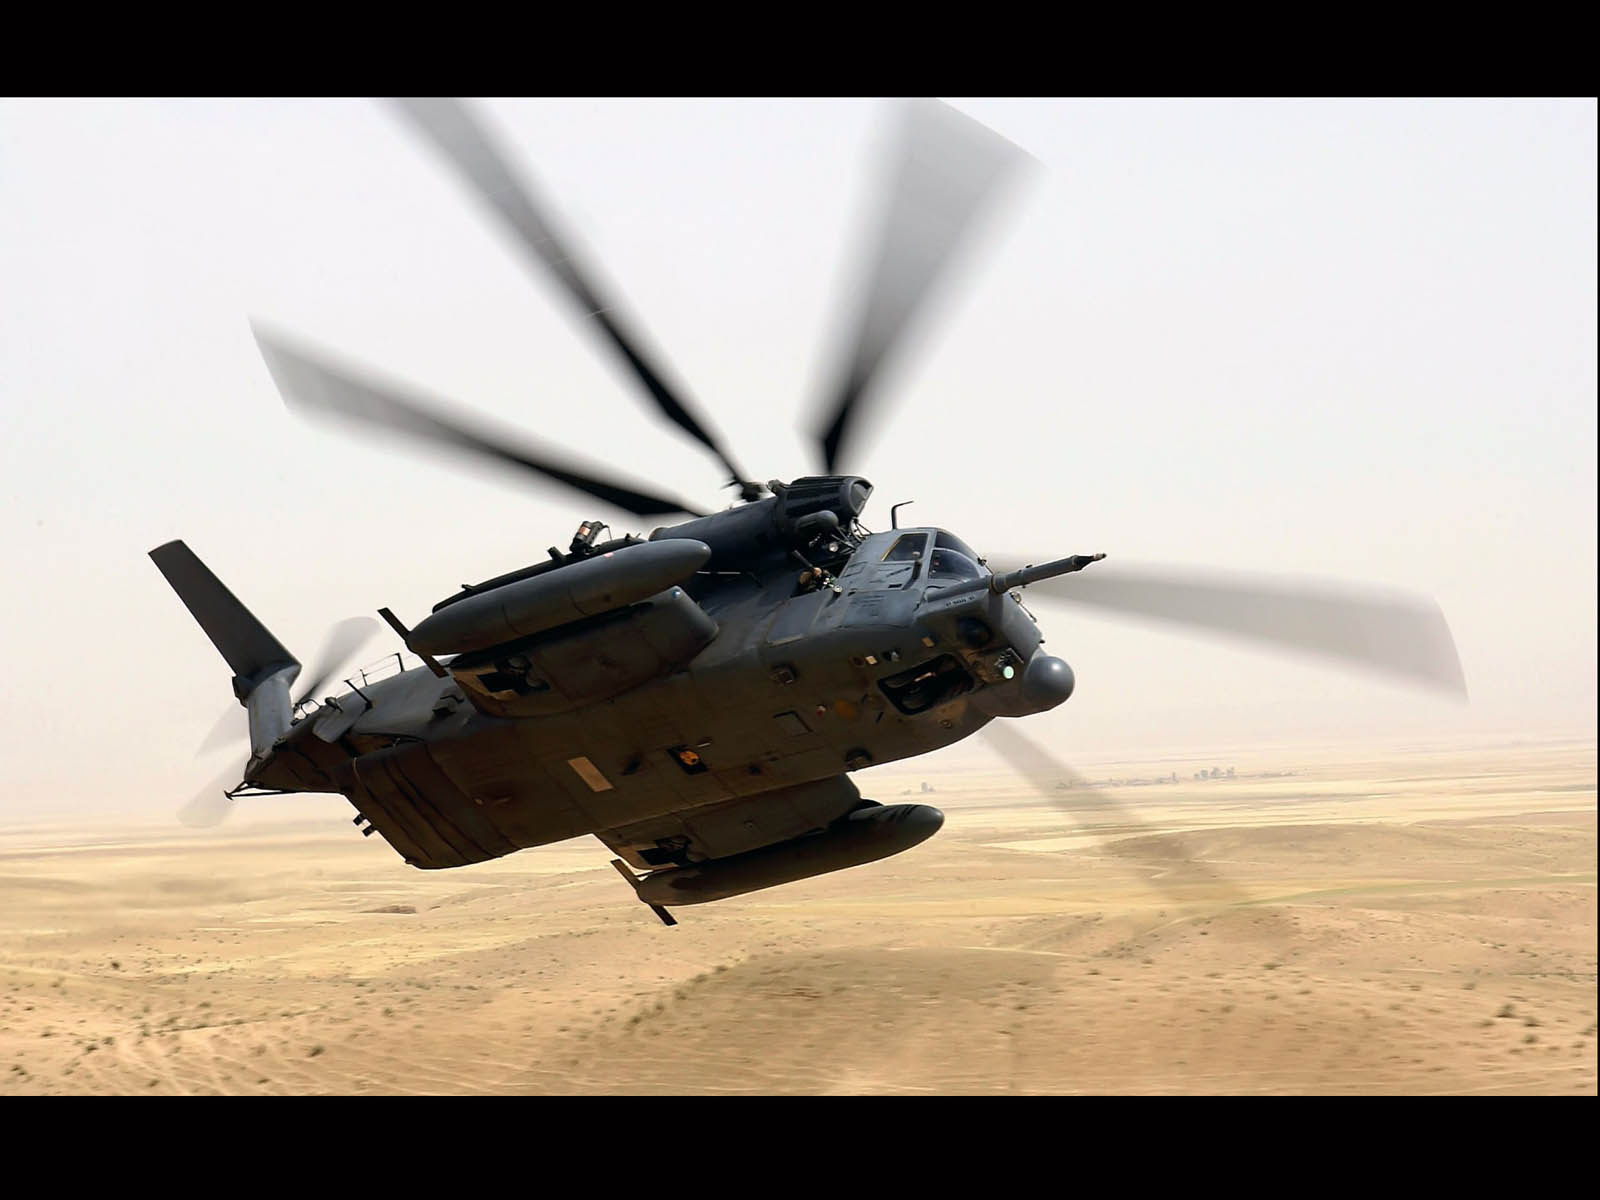 aeroplanes and helicopters with Mh 53 Pave Low Helicopter Wallpapers on 2302167 moreover Fema Termination Lists Coffins Already moreover Part3 Standards 325 325 160 together with 355010383105300791 together with Mh 53 Pave Low Helicopter Wallpapers.